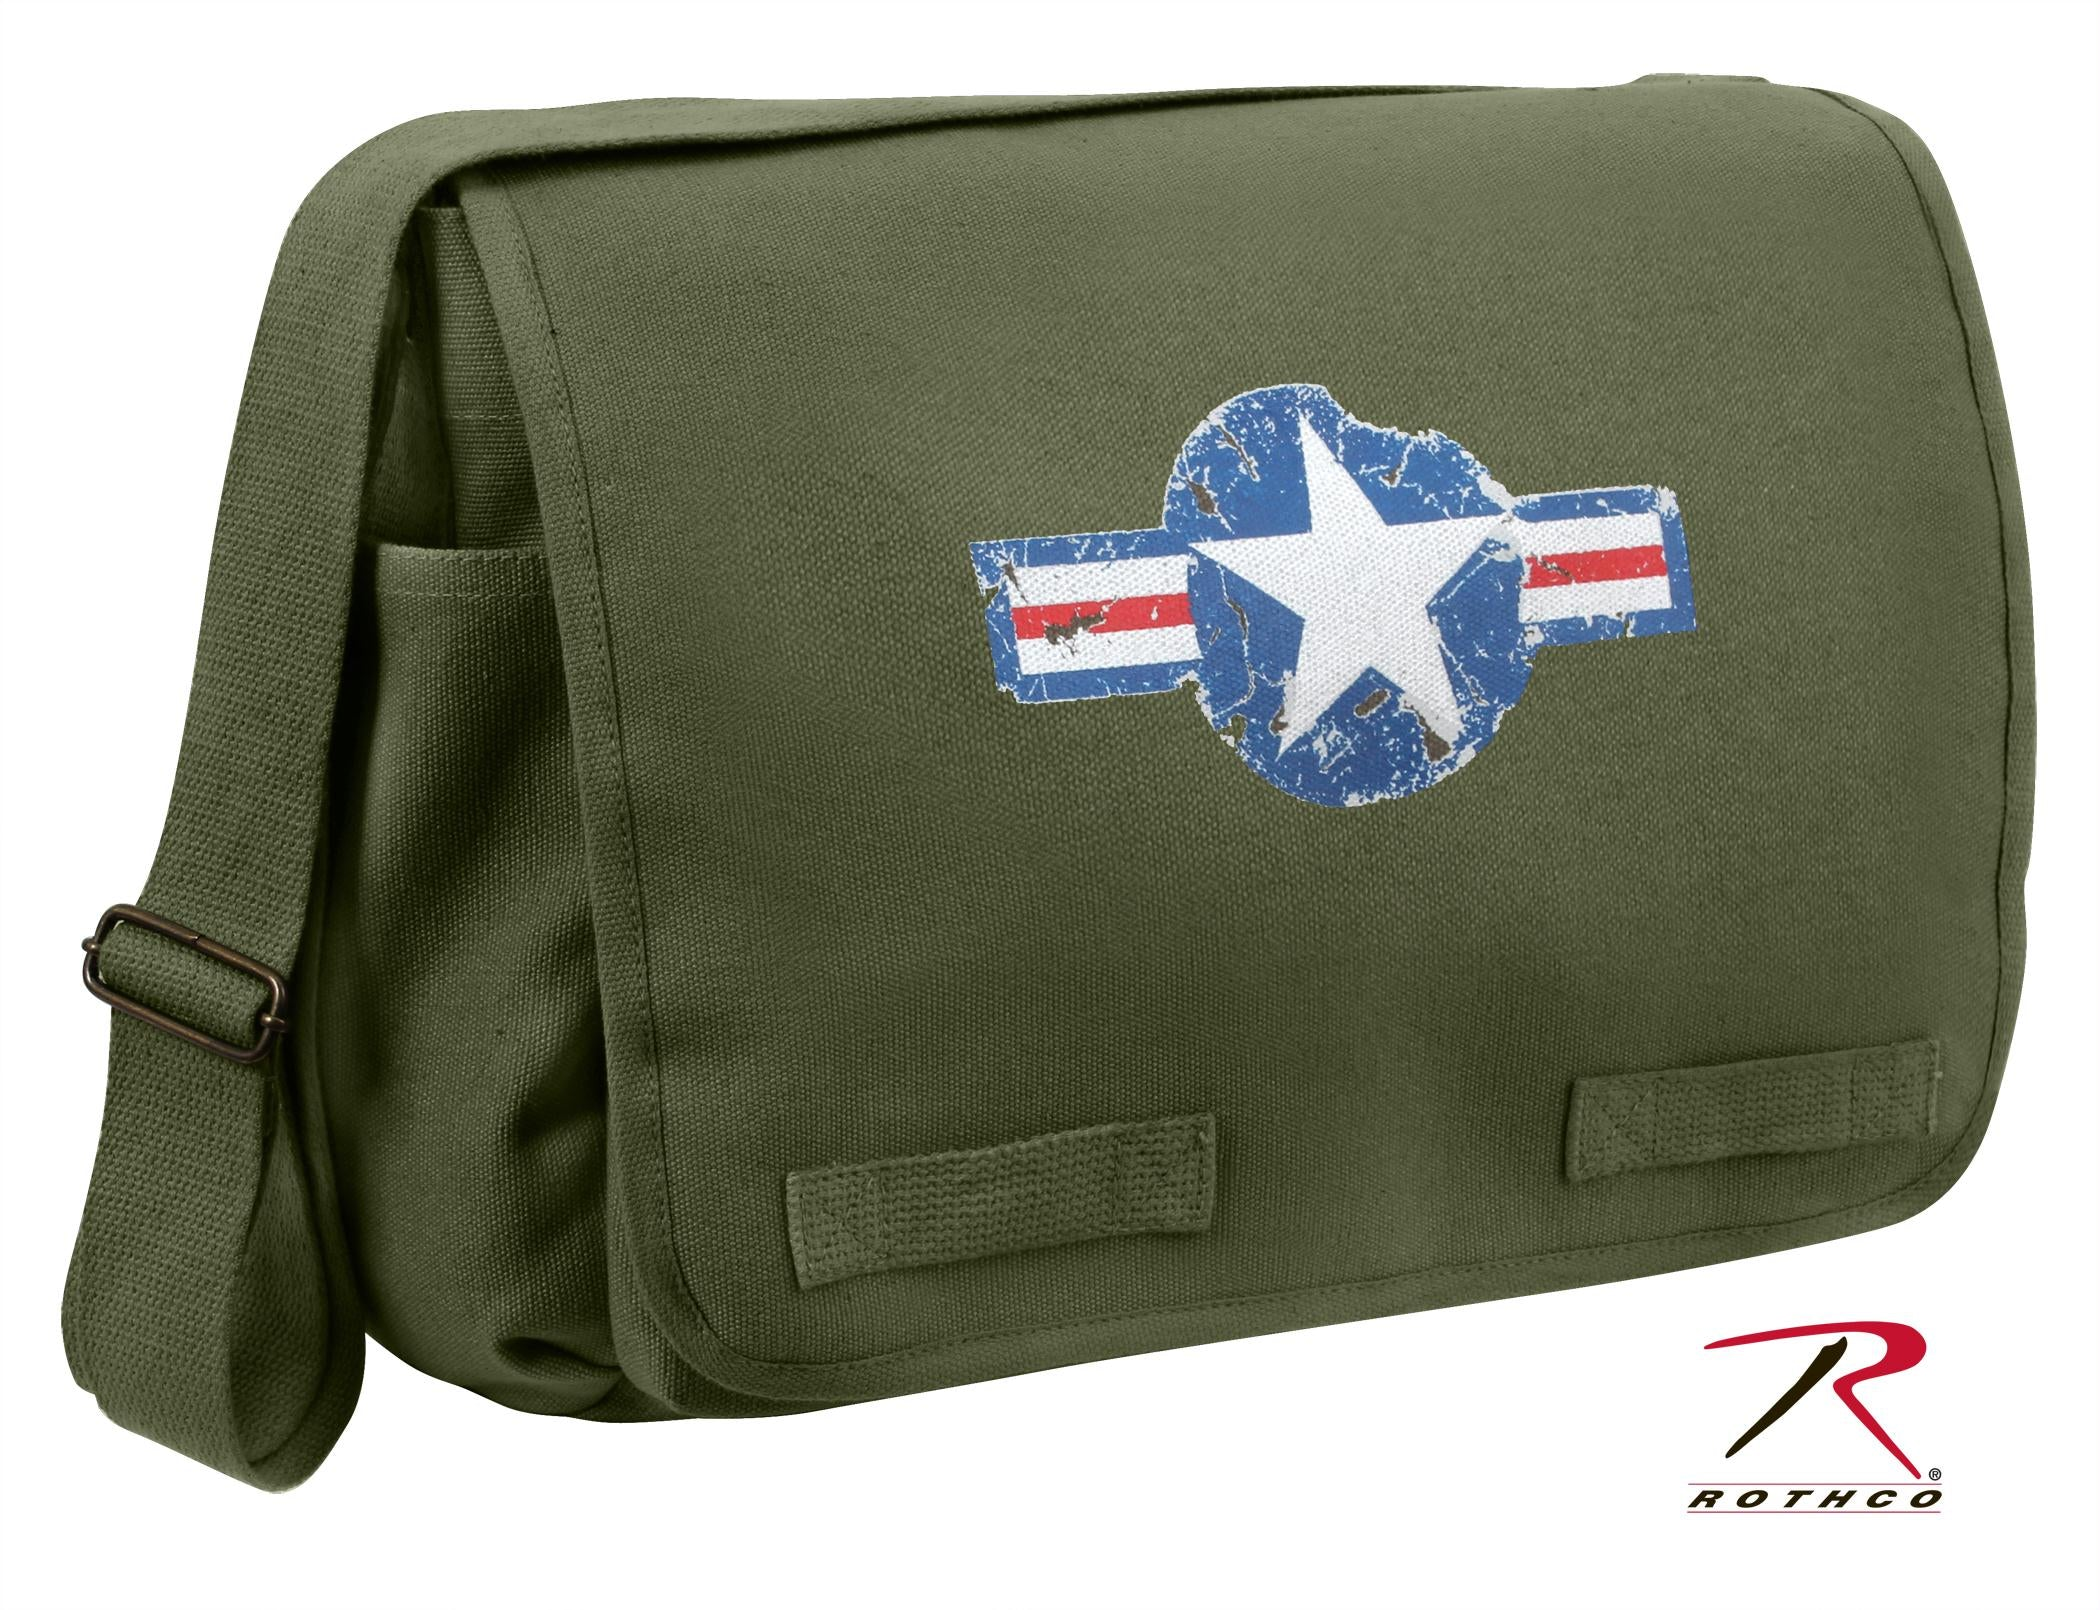 Rothco Air Corps Heavyweight Classic Messenger Bag - Olive Drab